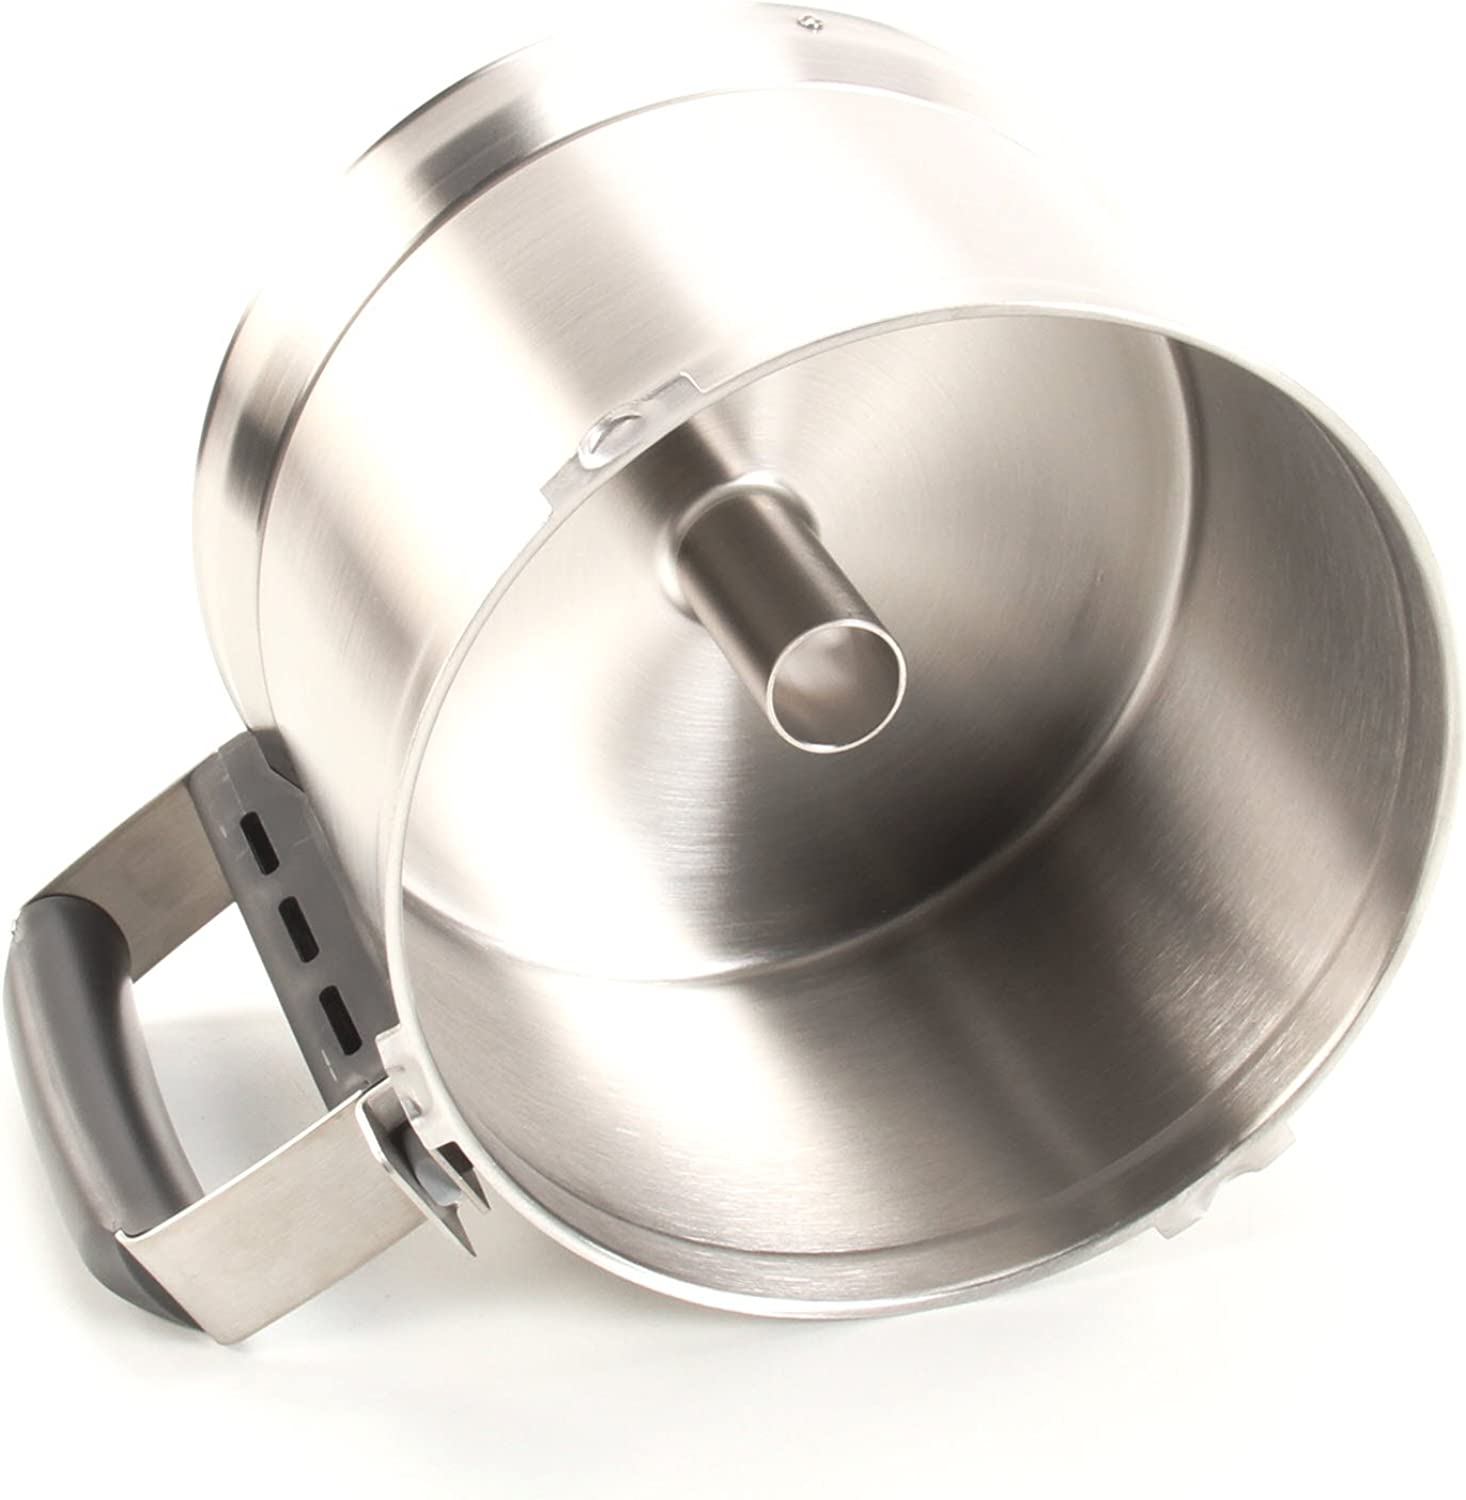 Robot Coupe 39795 R2U Type 3 Stainless Steel Bowl